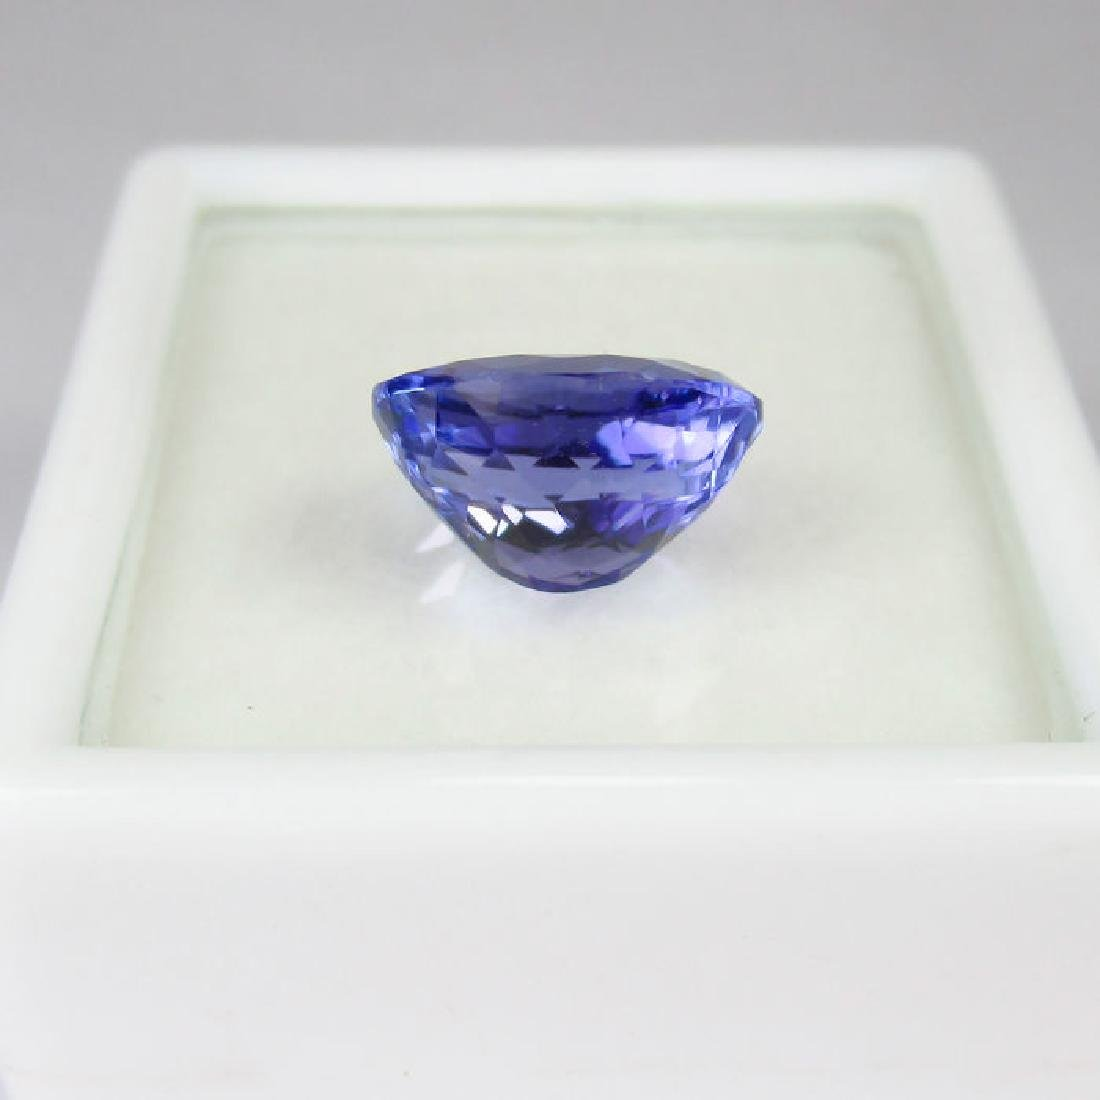 3.05 Ctw  IGI Certified Natural Loose Oval Tanzanite - 6